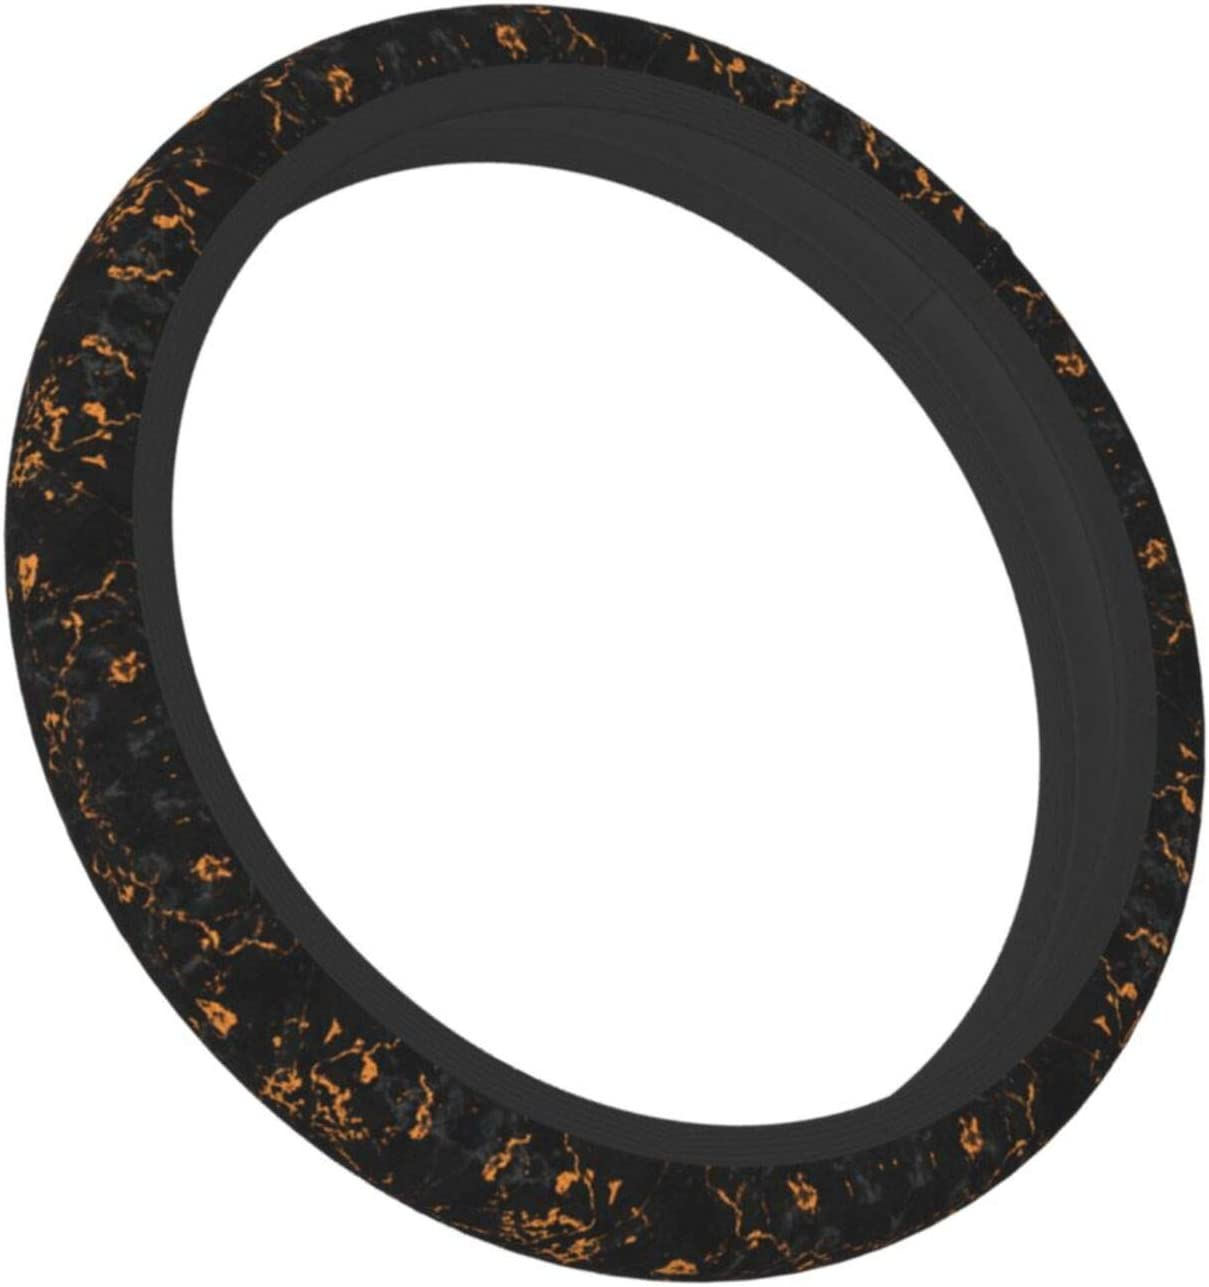 All stores are sold Deaowangluo Black Marble Steering Wheel Anti Cover Women for Jacksonville Mall Sl